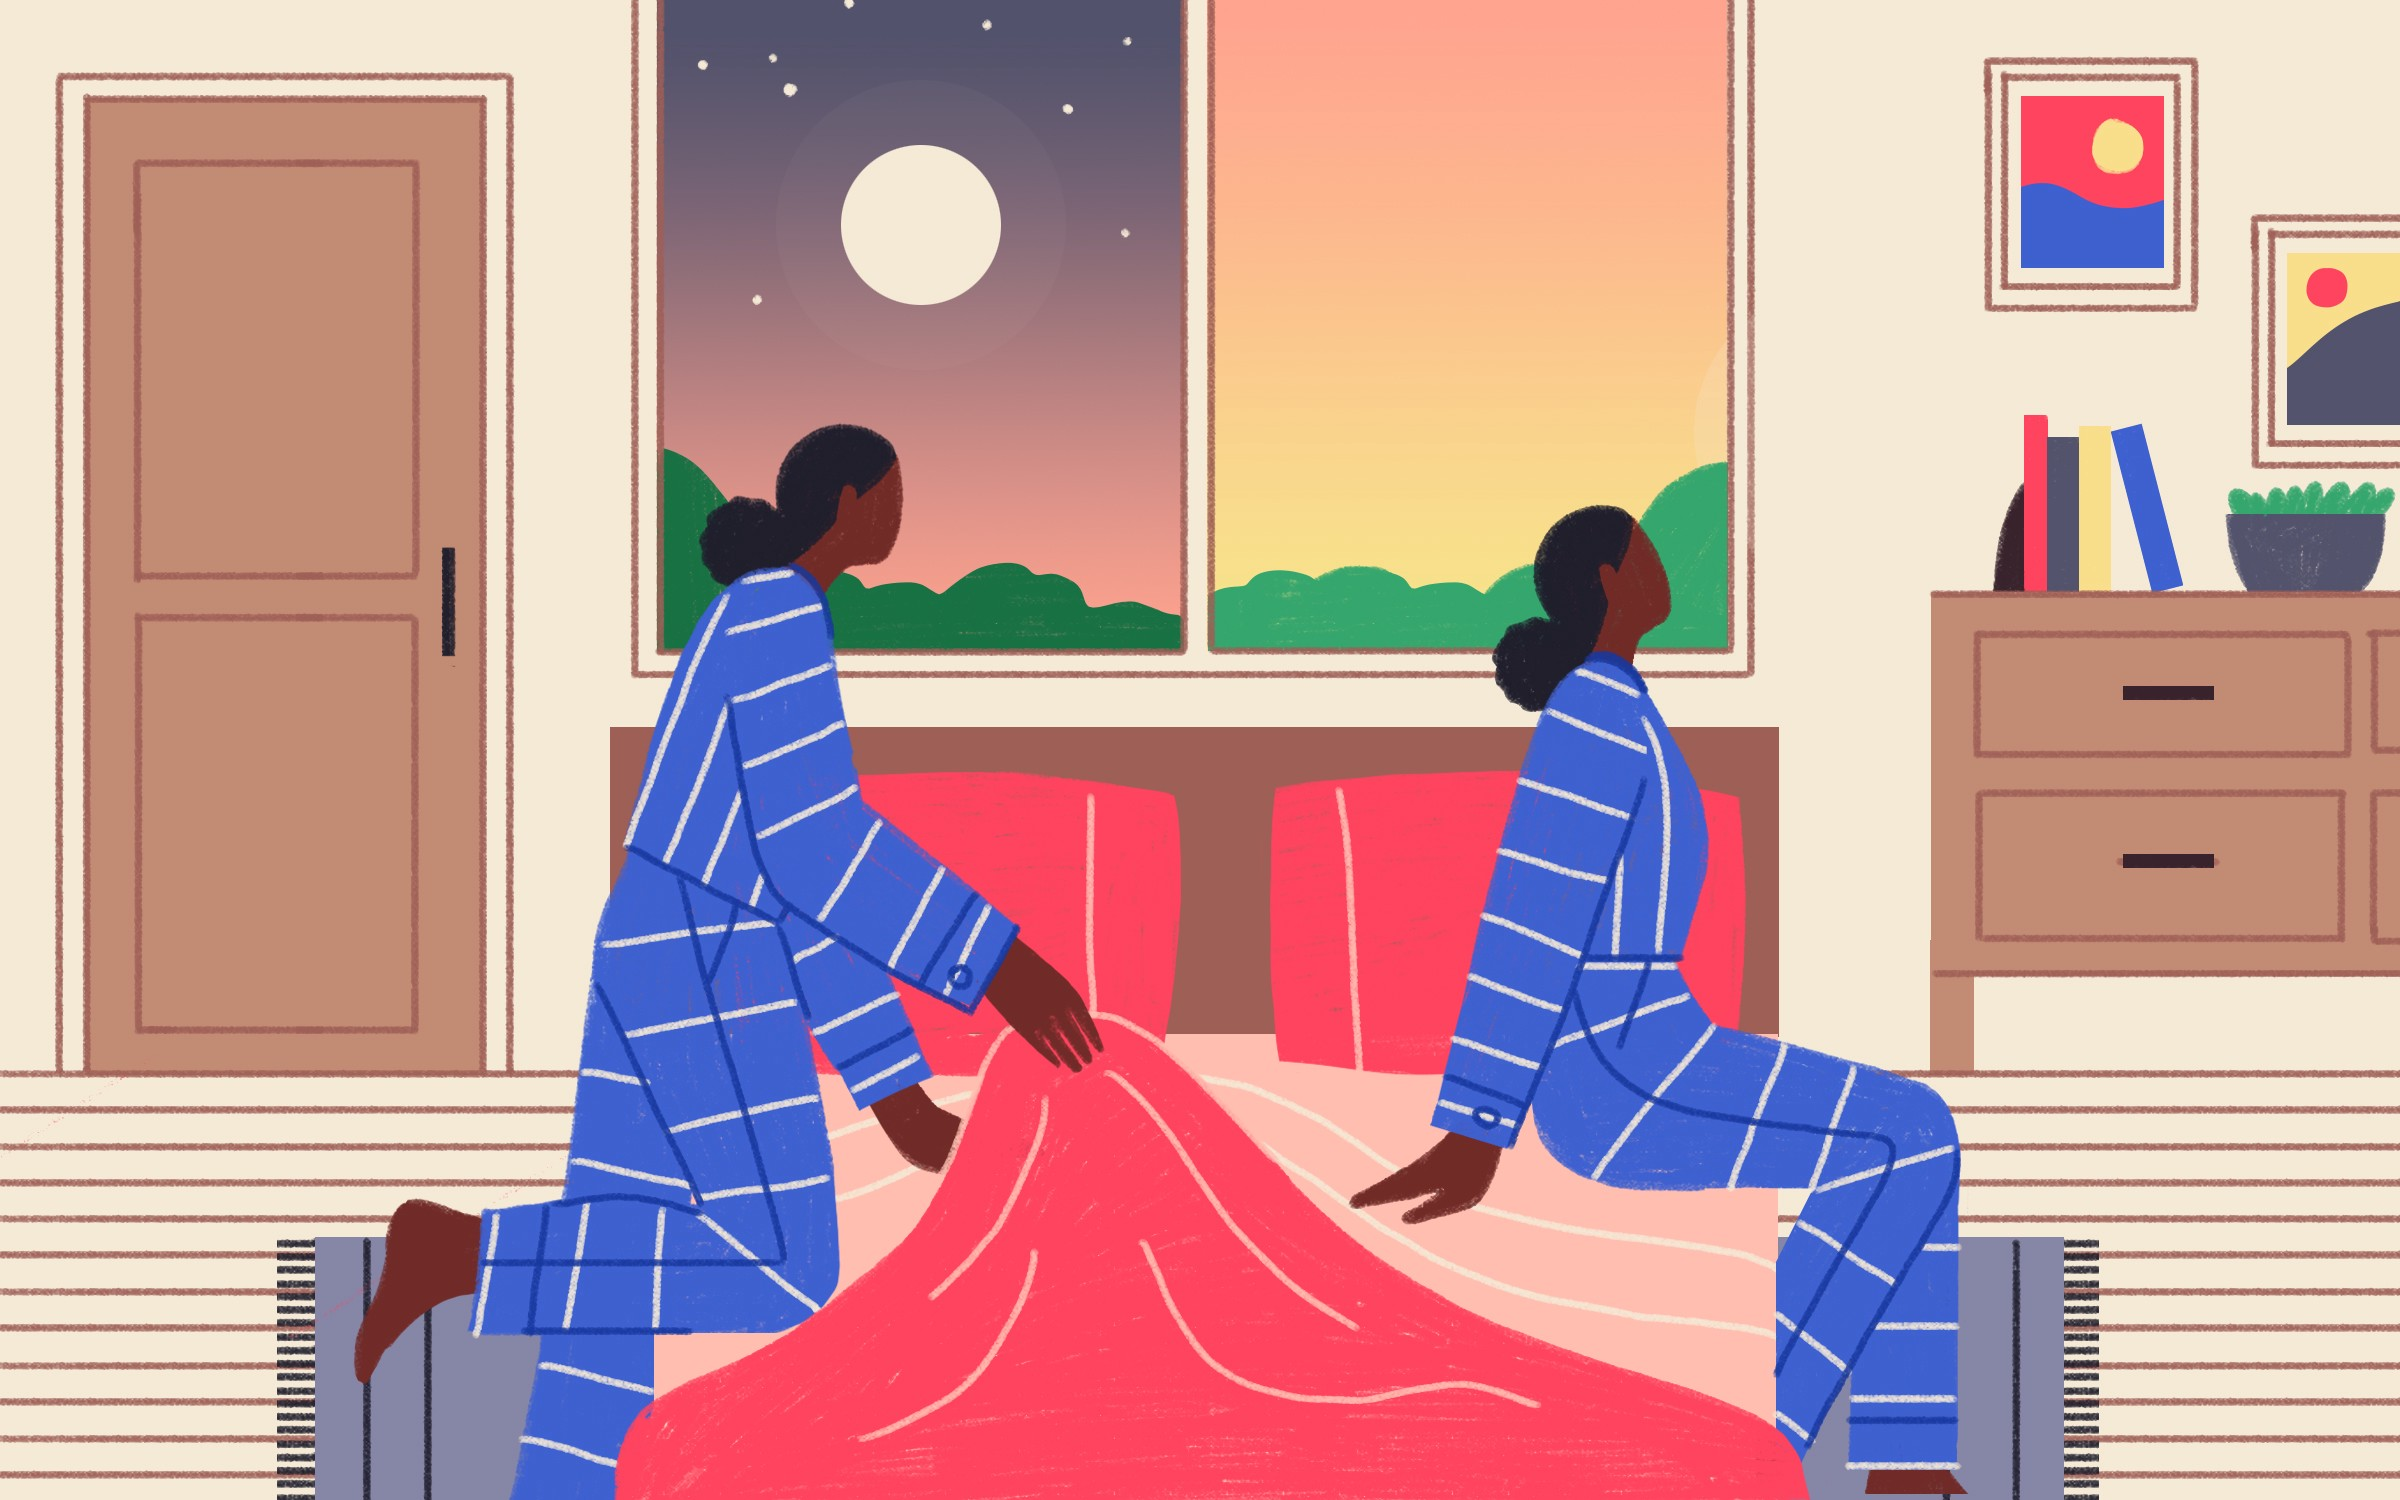 Illustration of a woman getting into bed at night and getting up n the morning.